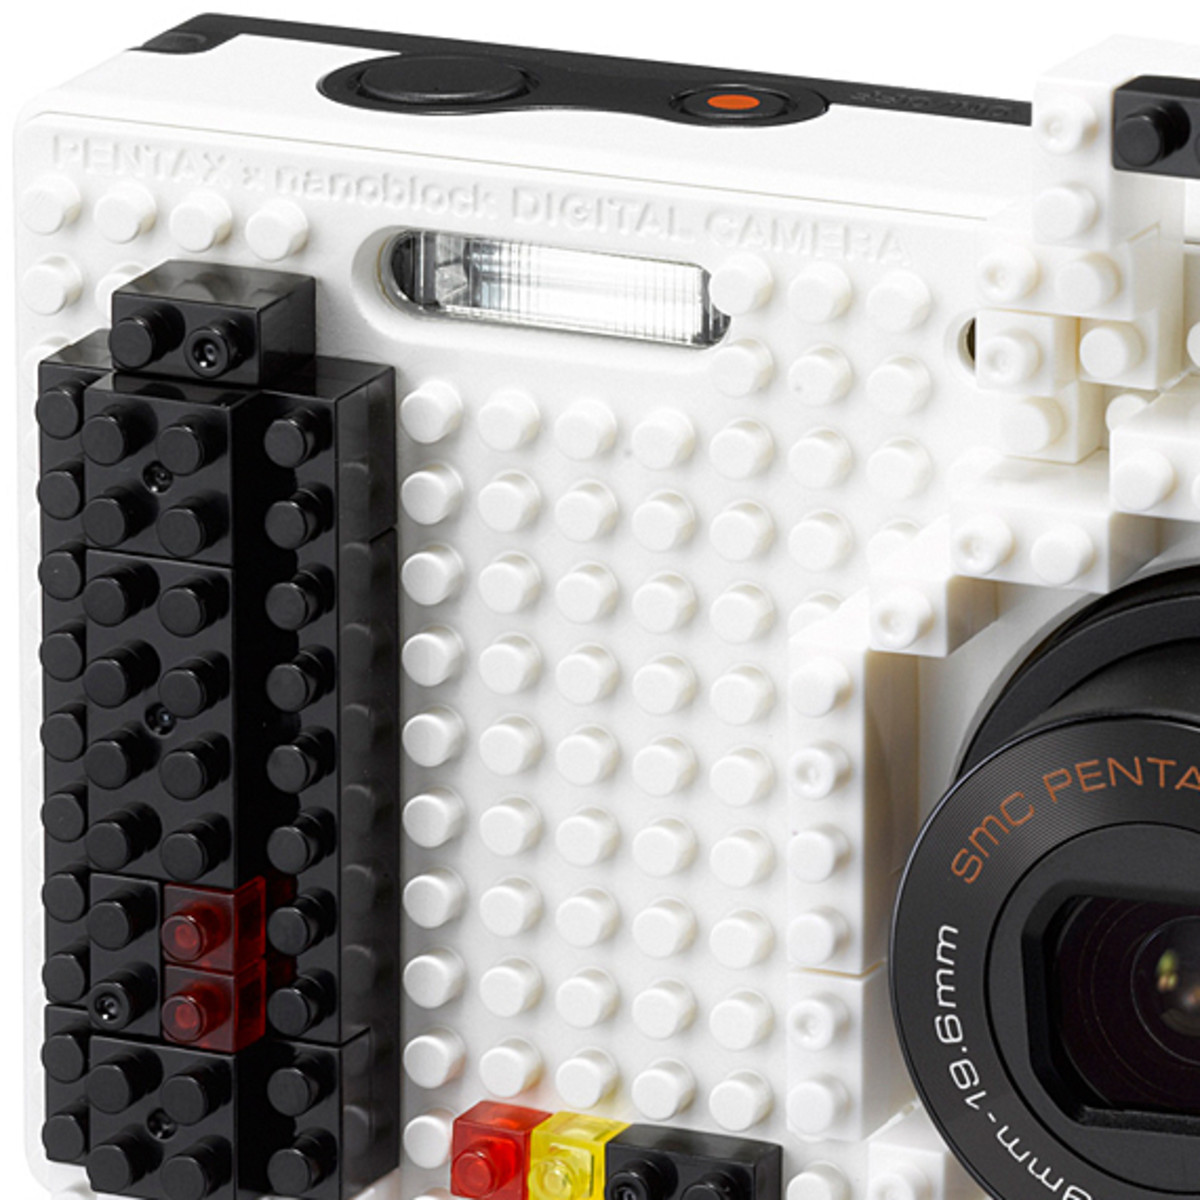 nanoblock-pentax-optio-nb1000-white-03